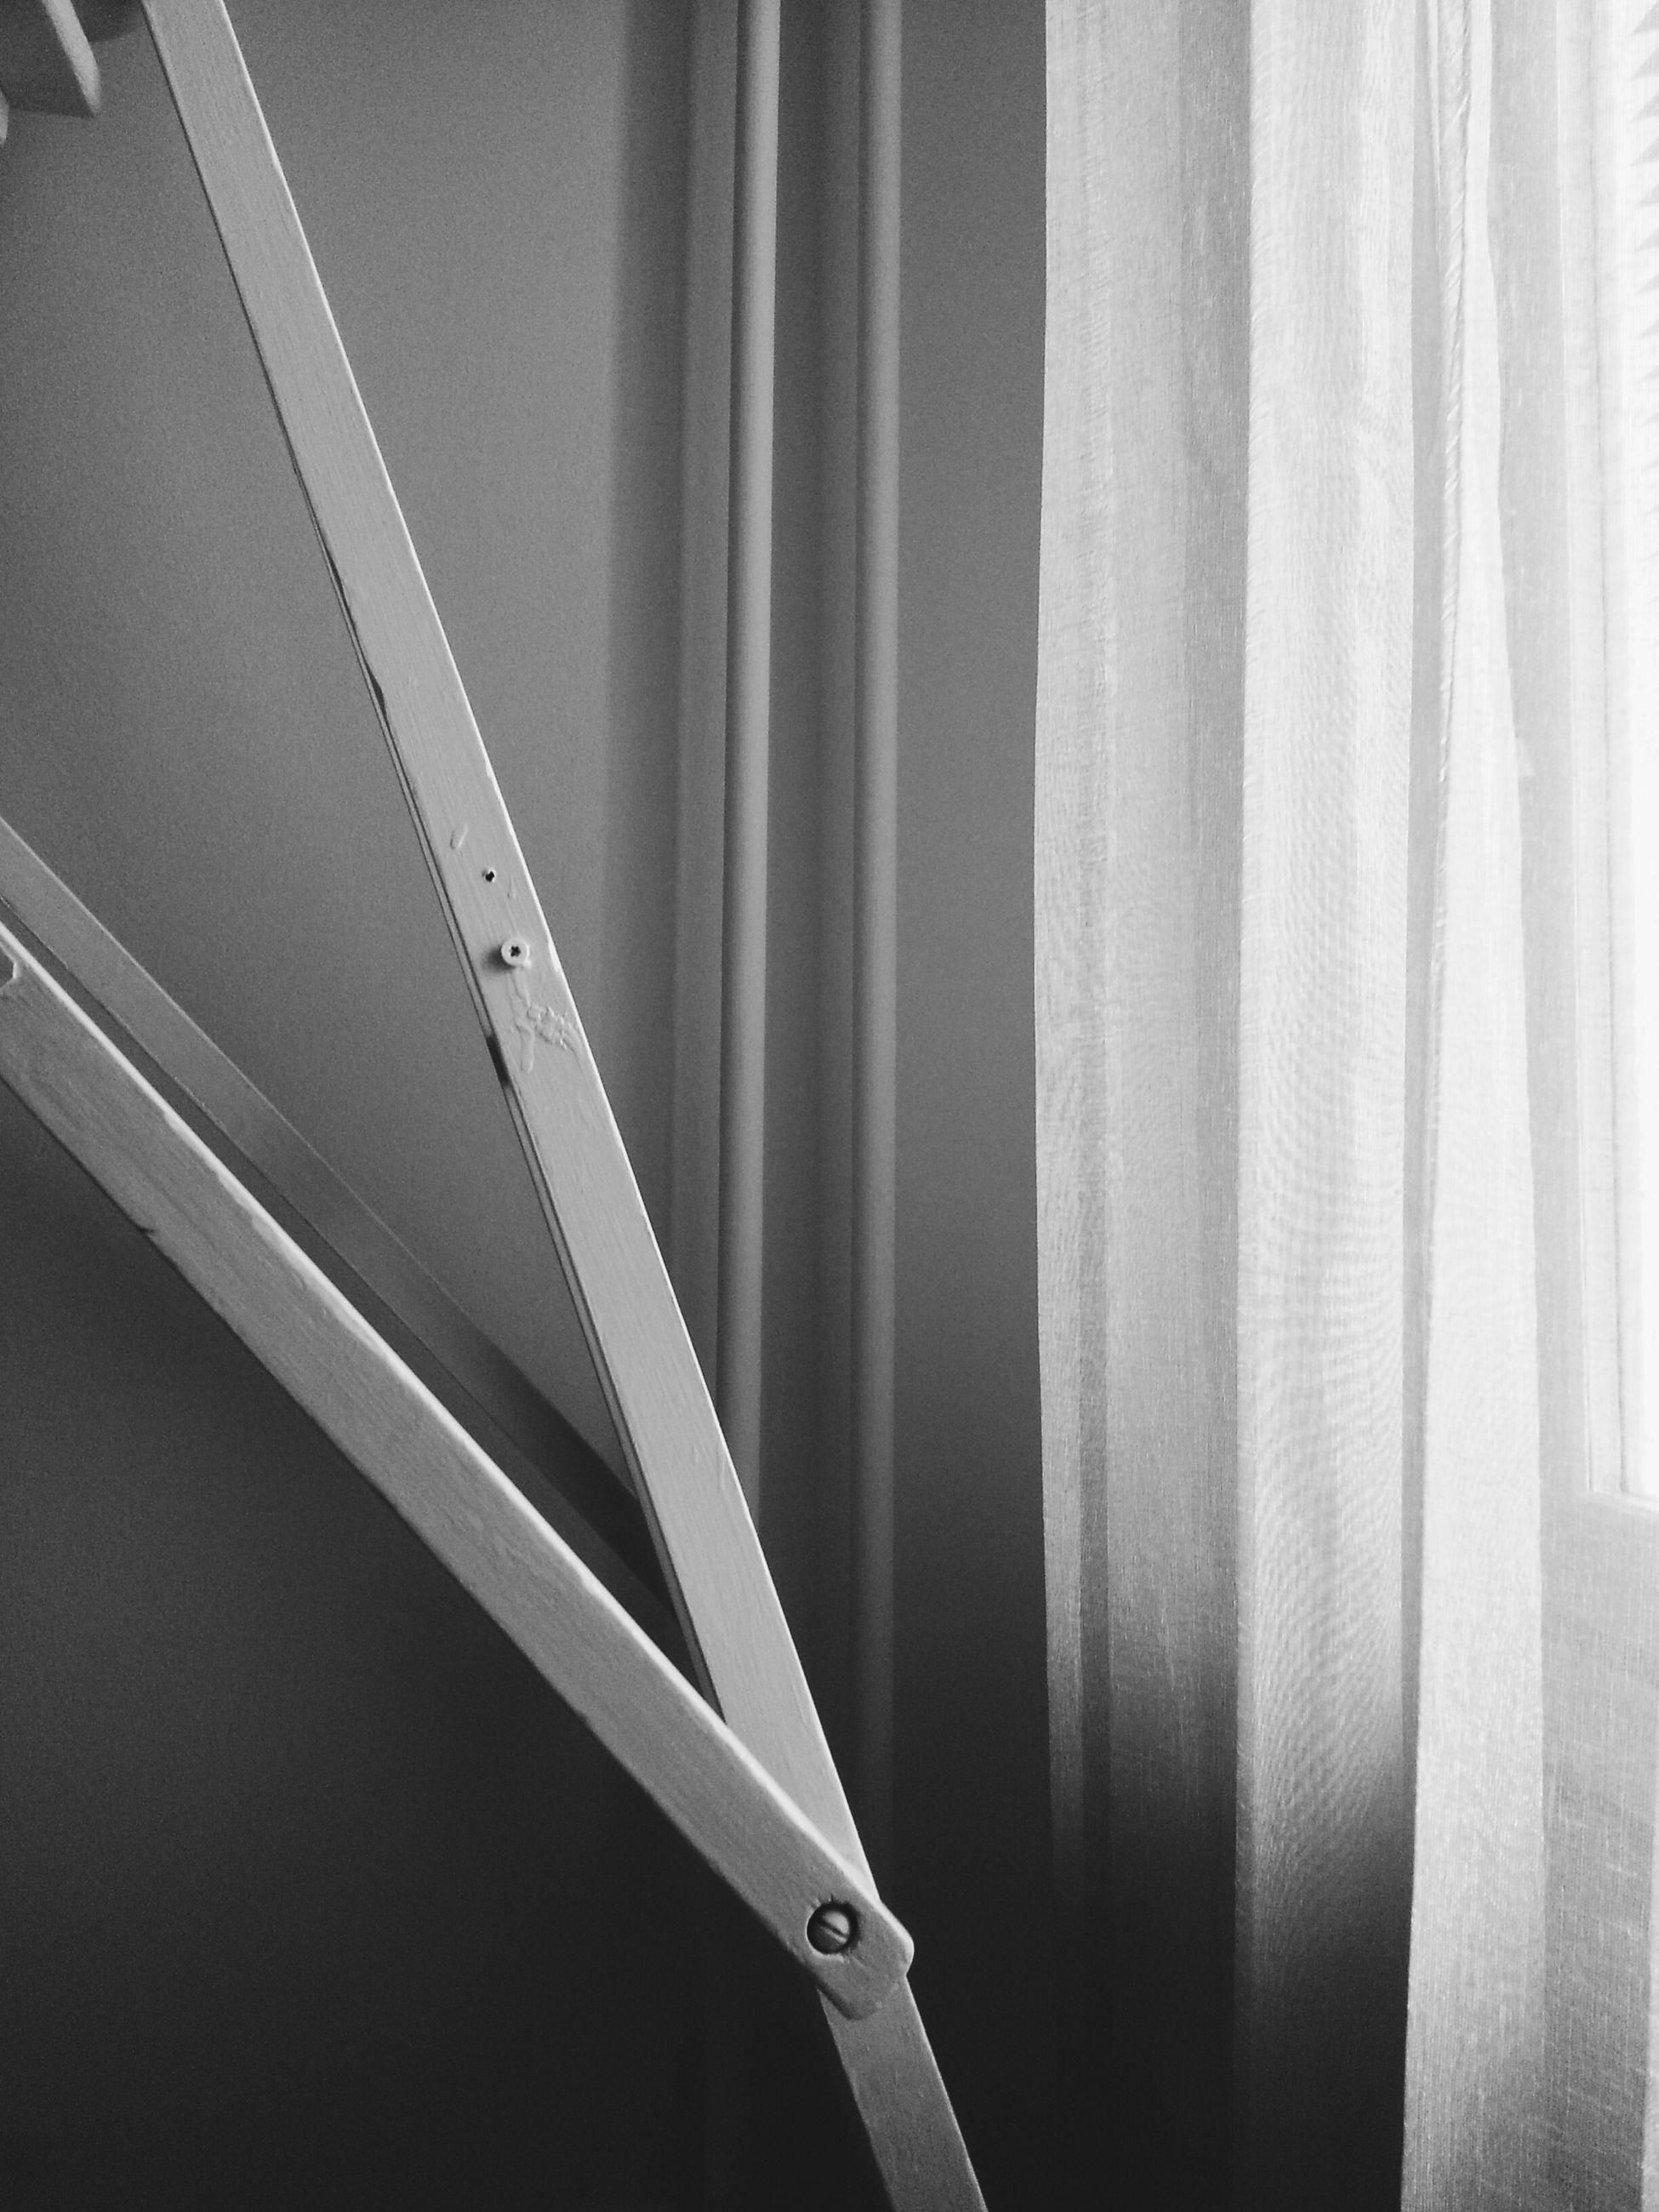 indoors, curtain, built structure, wall - building feature, white color, home interior, pattern, no people, architecture, textile, close-up, hanging, ceiling, full frame, design, backgrounds, white, window, fabric, day